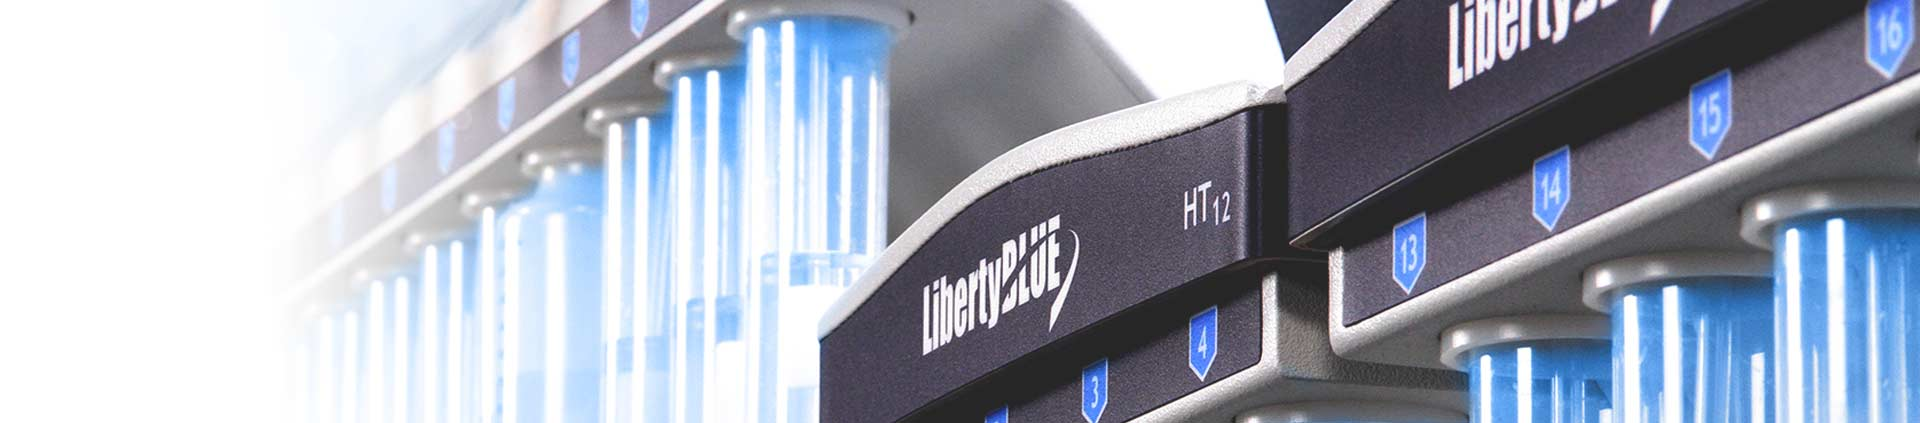 CEM - Liberty Blue Peptide Synthesizer